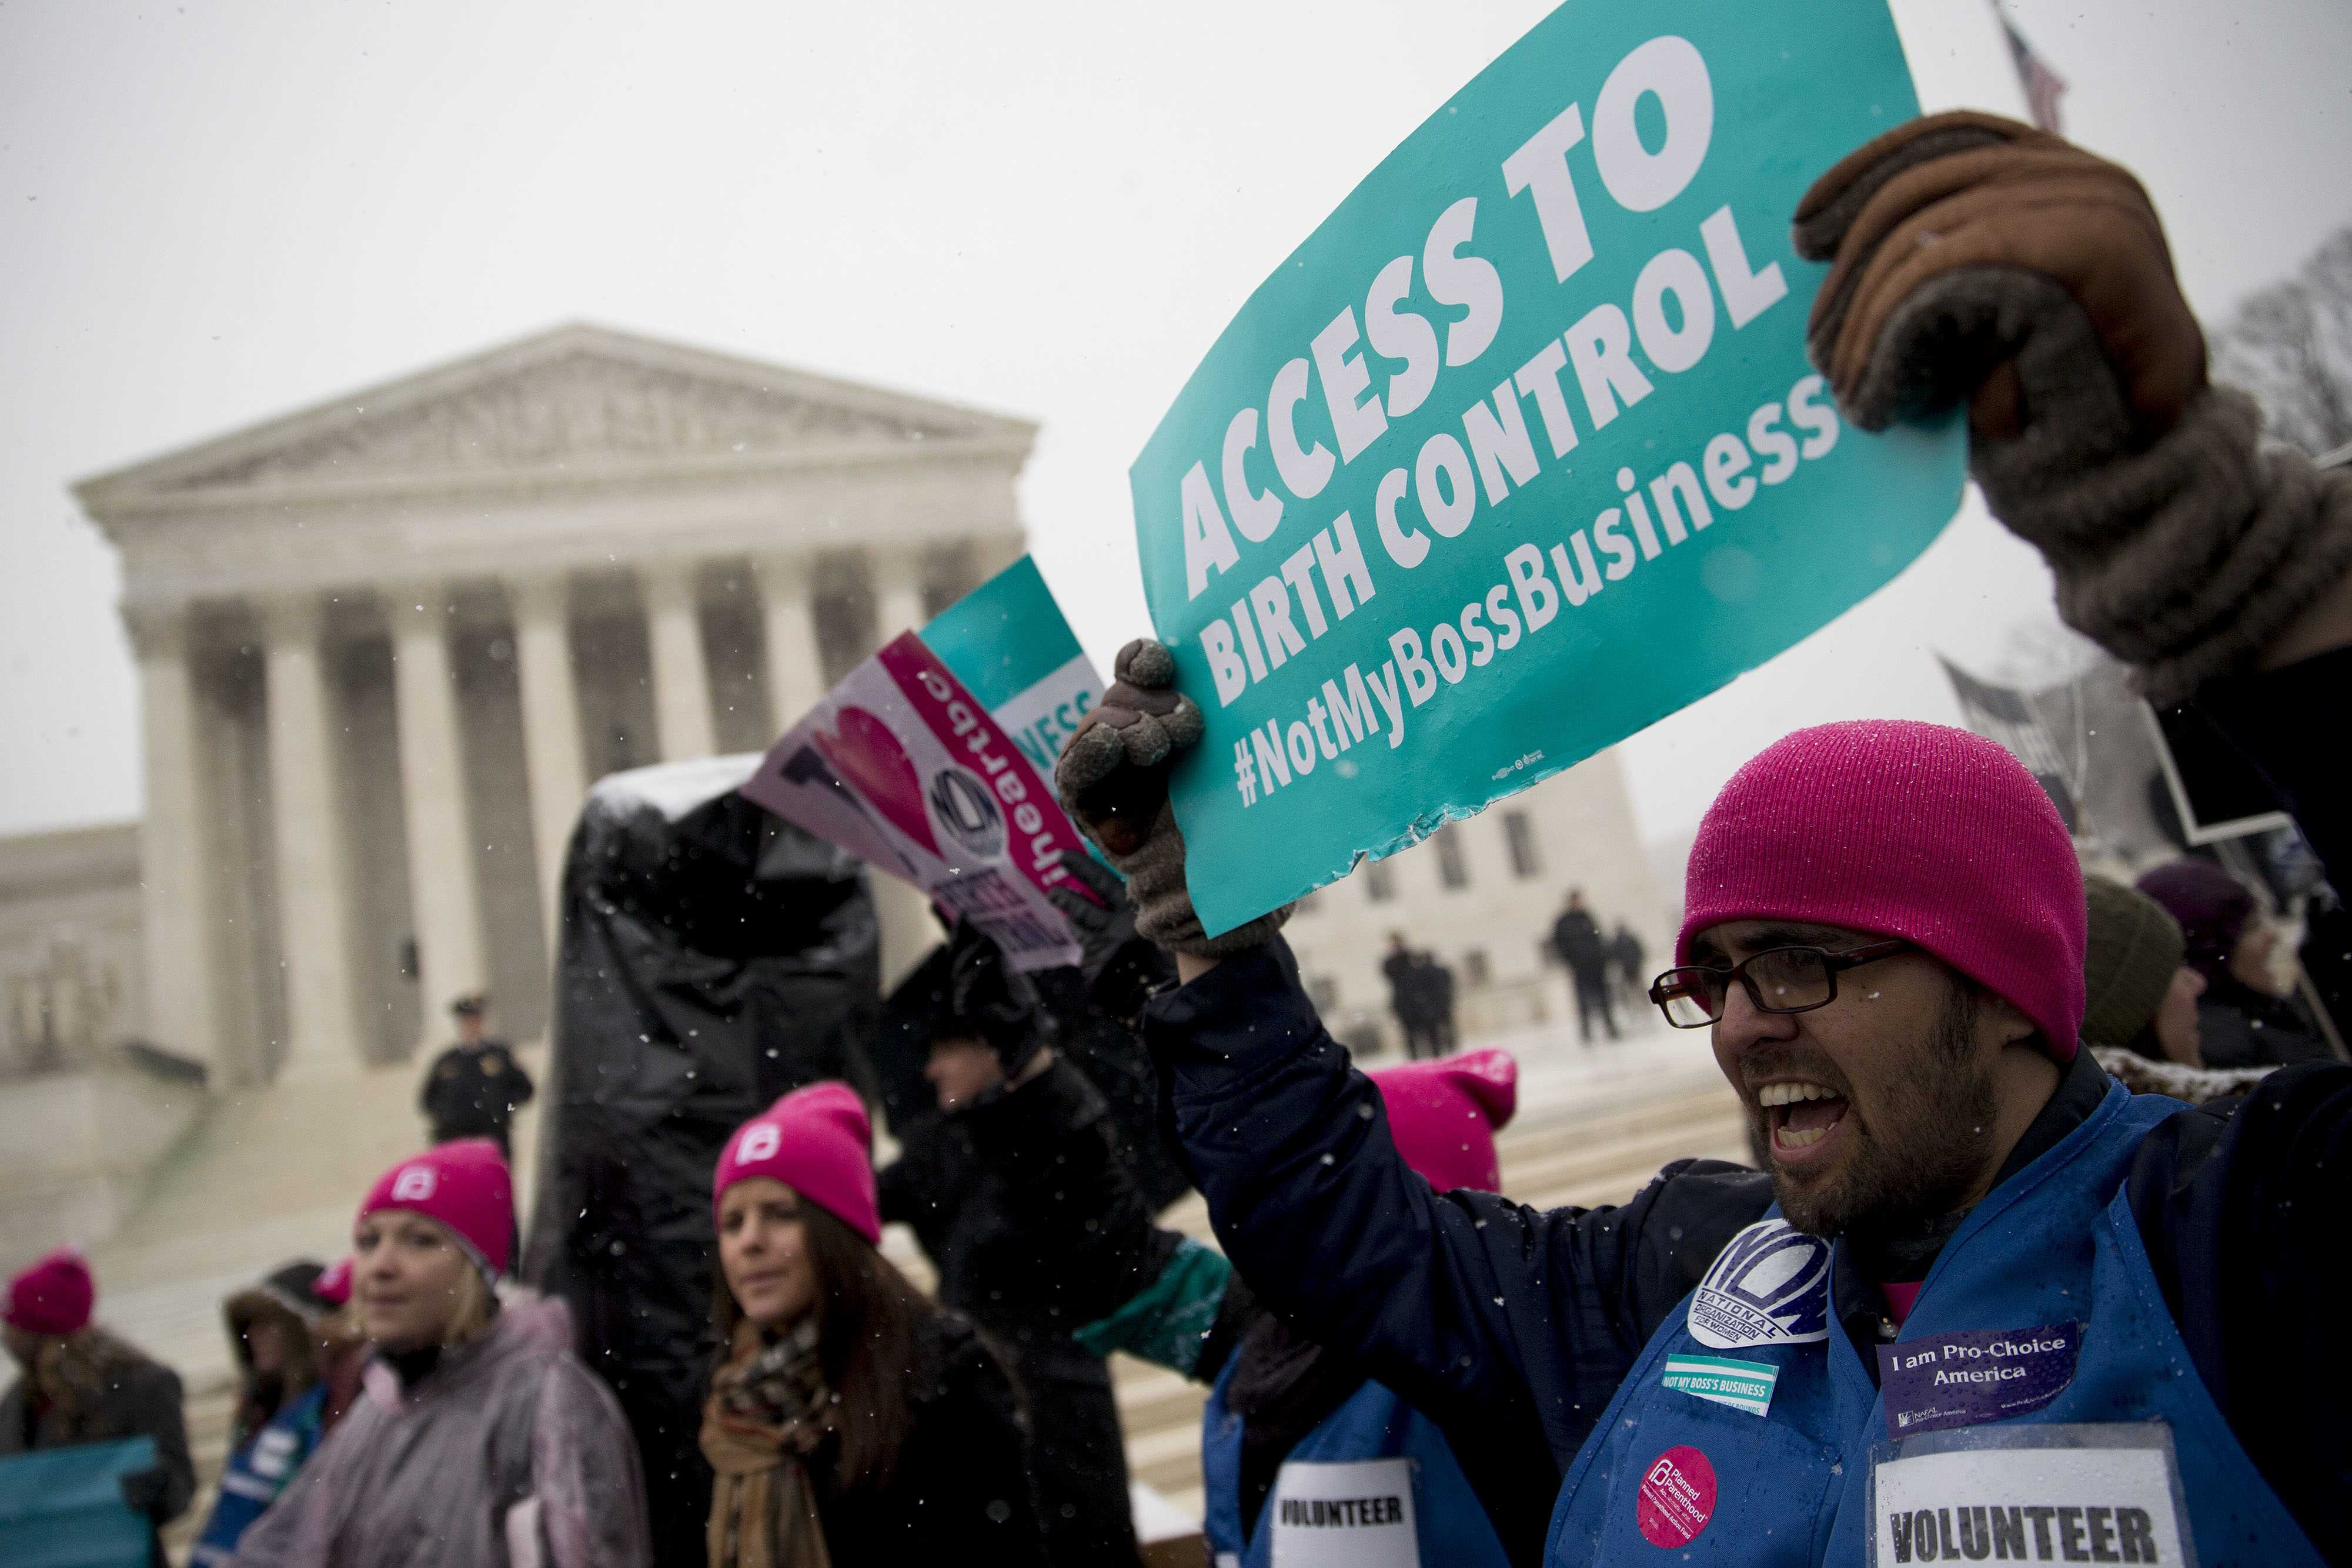 U.S. appeals court presses Obama administration on contraception